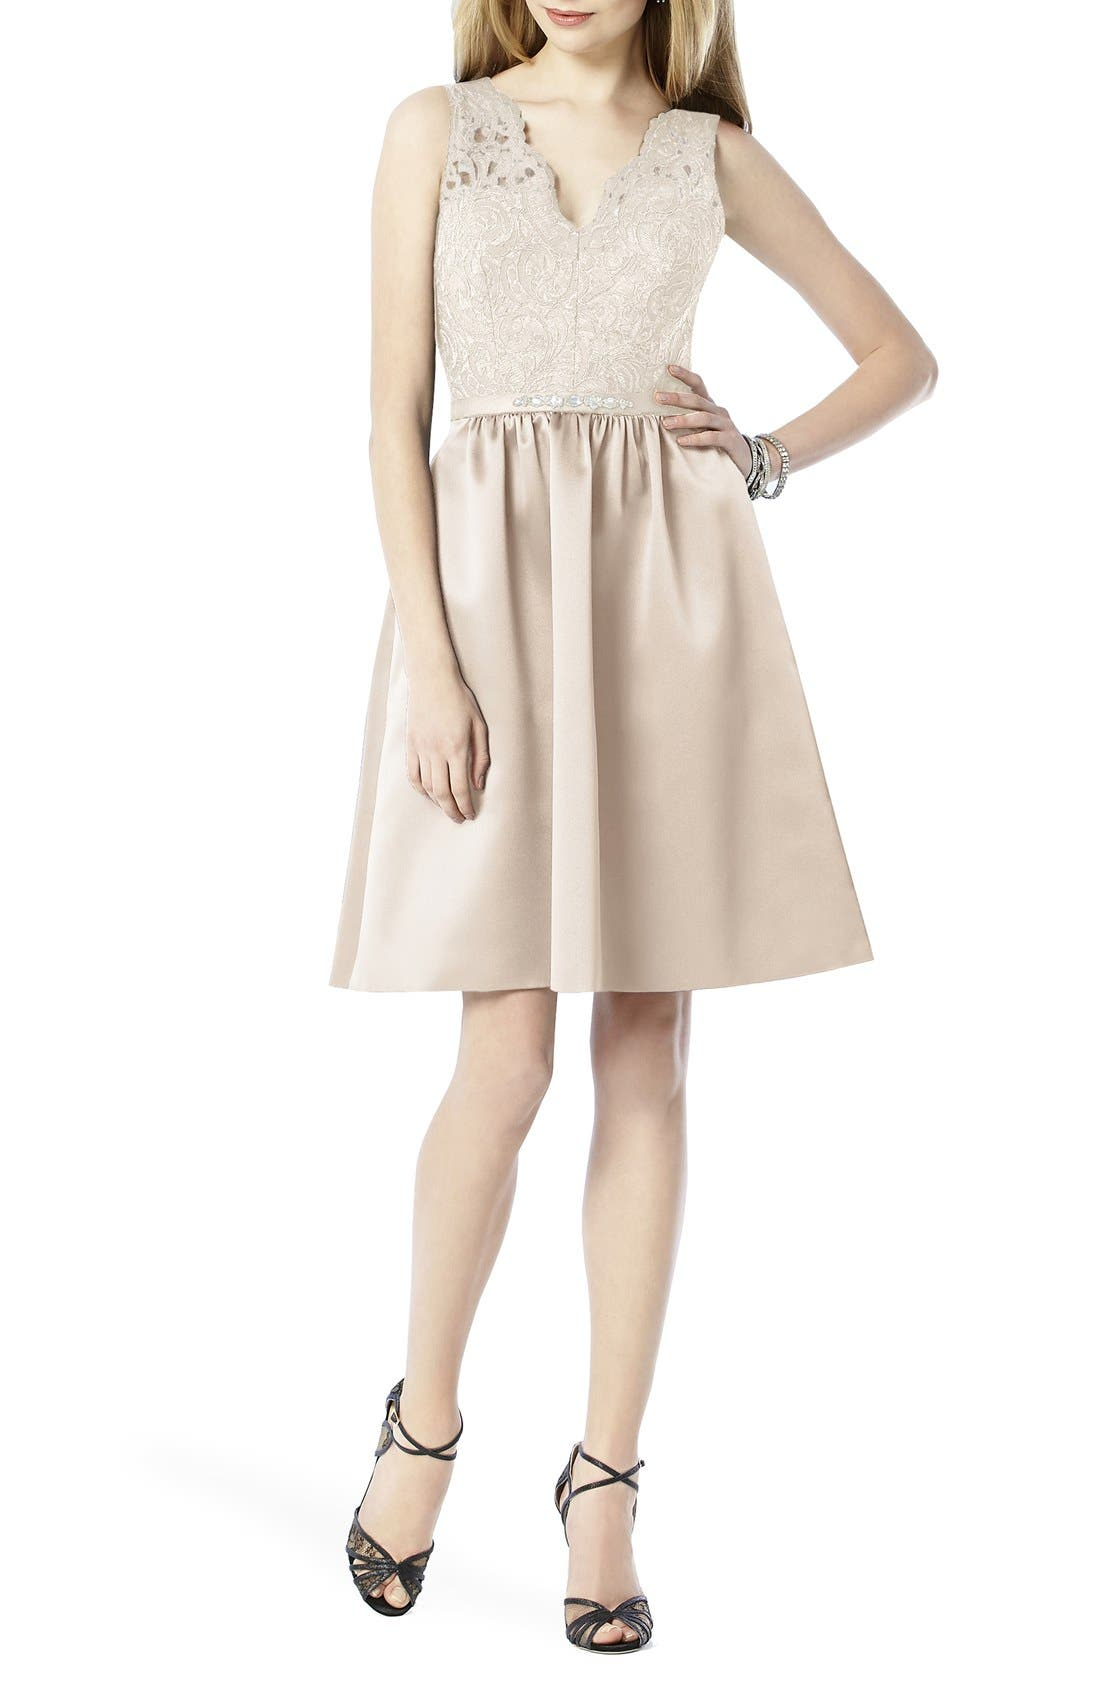 Embellished Lace with Satin Fit & Flare Dress,                         Main,                         color, Ivory Lace/ Cameo